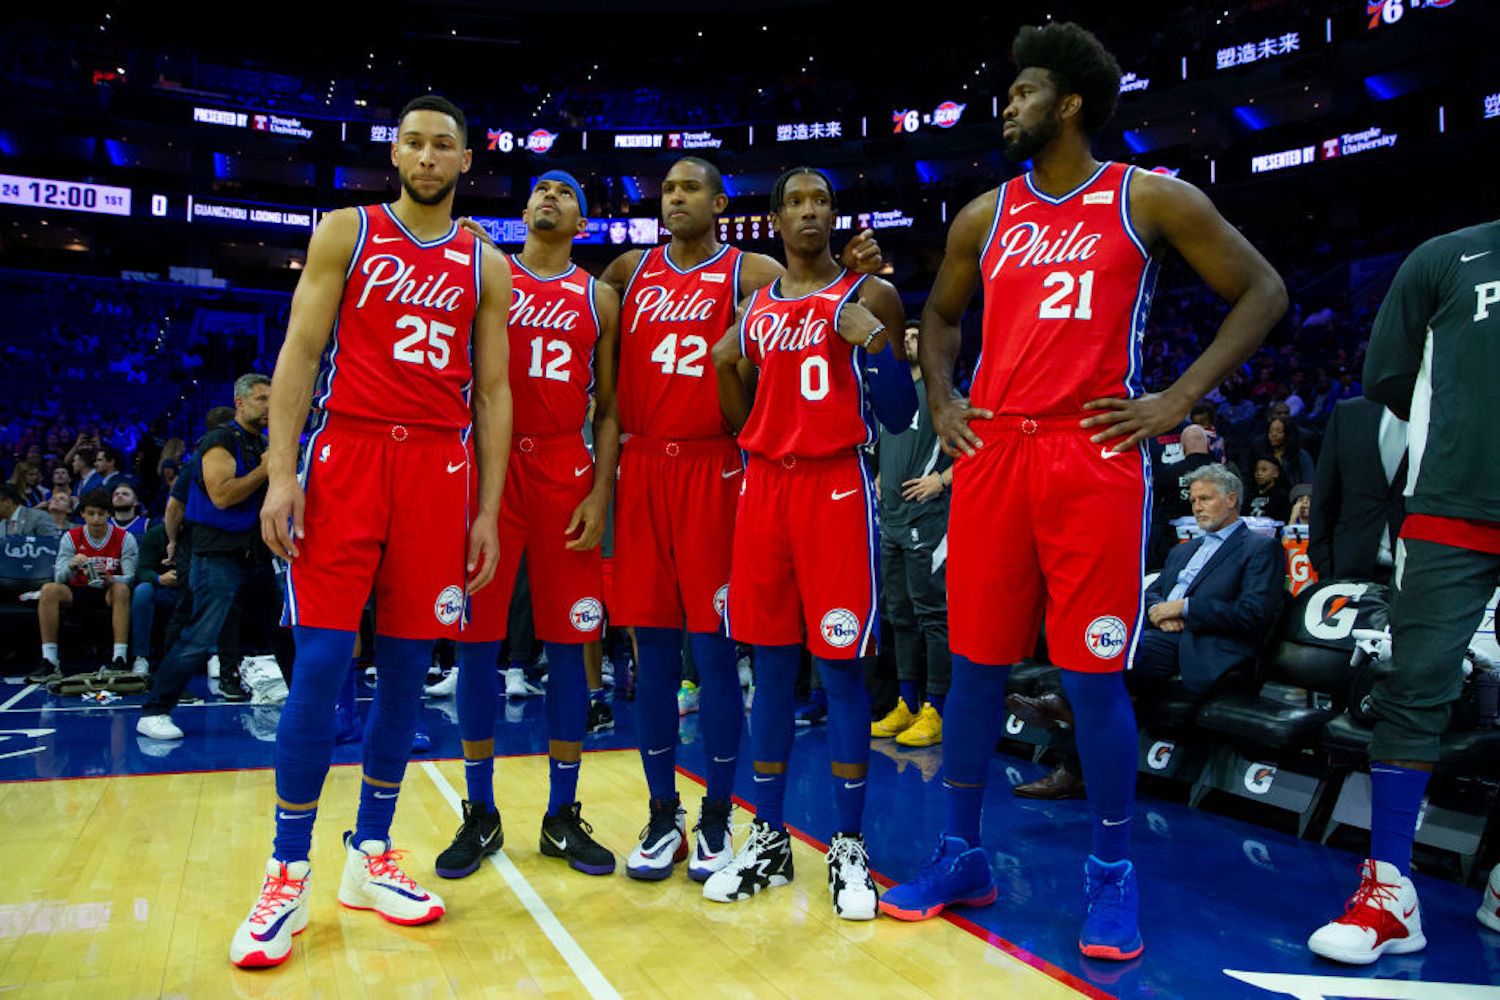 The Sixers look lost in the 2020 playoffs, and there's still a $289 million problem that will cripple the franchise for years to come.